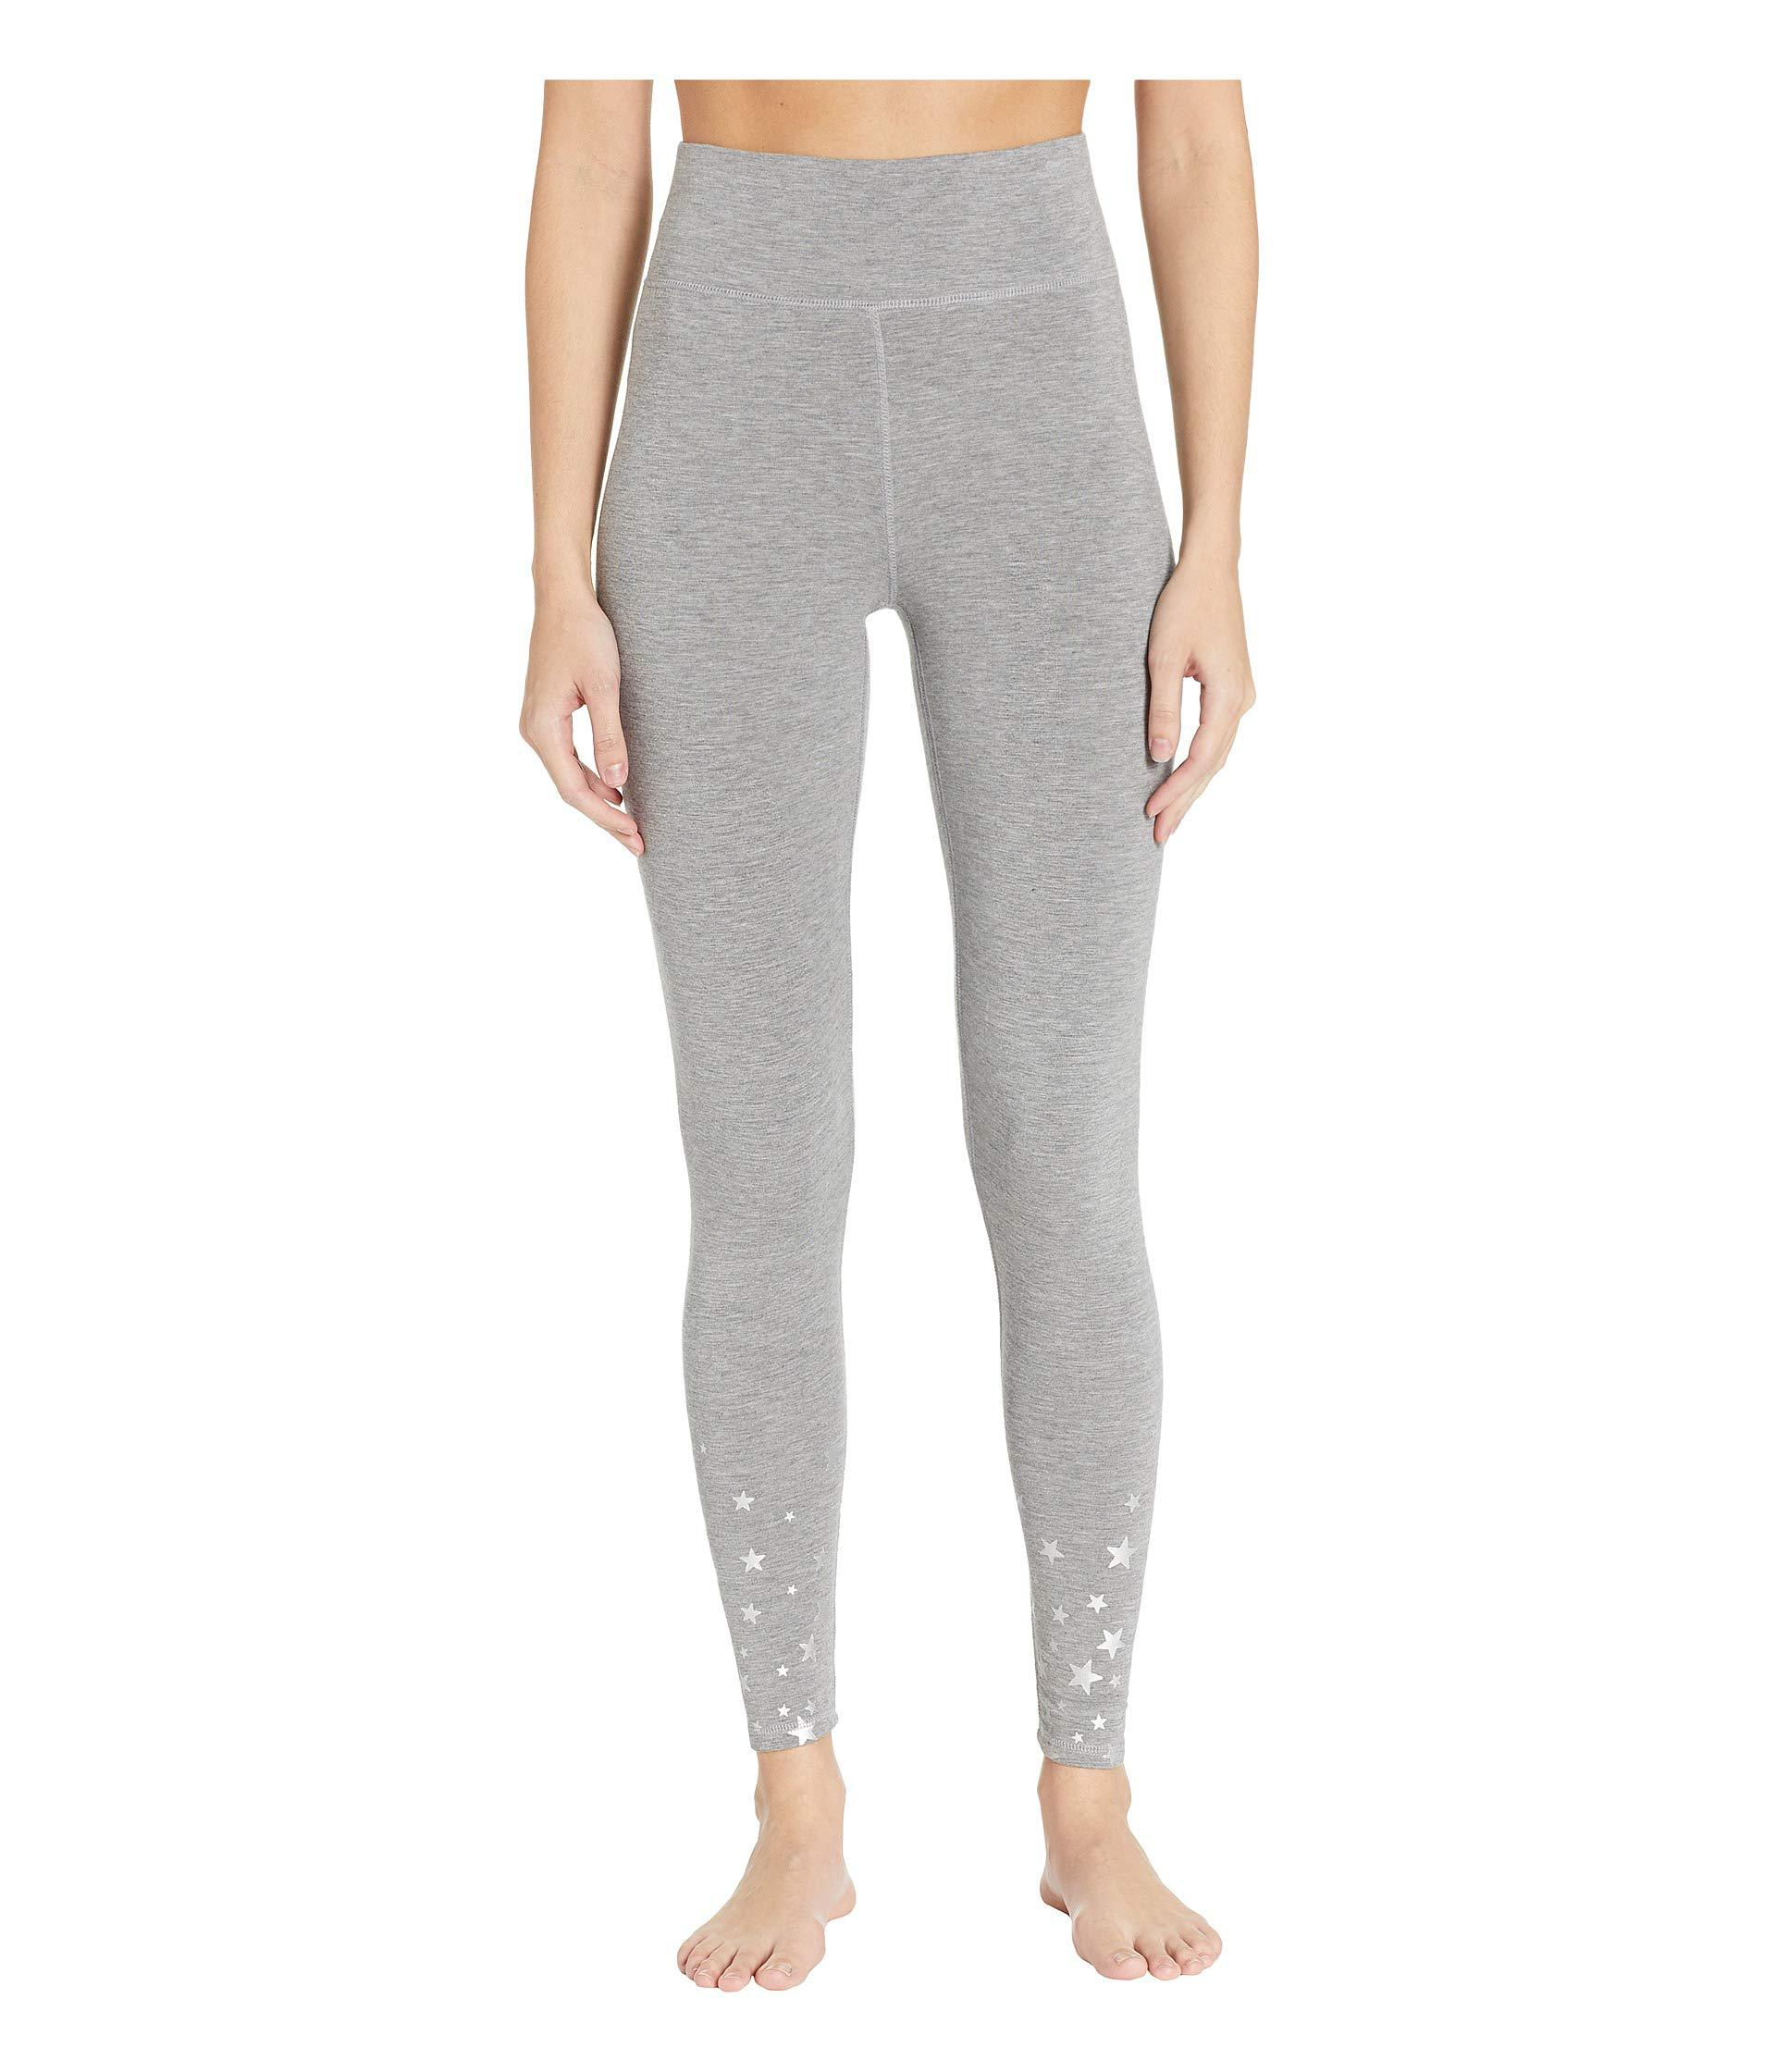 18adf0099f6 Lyst - Pj Salvage Oh Holiday Star Pants (heather Grey) Women s ...